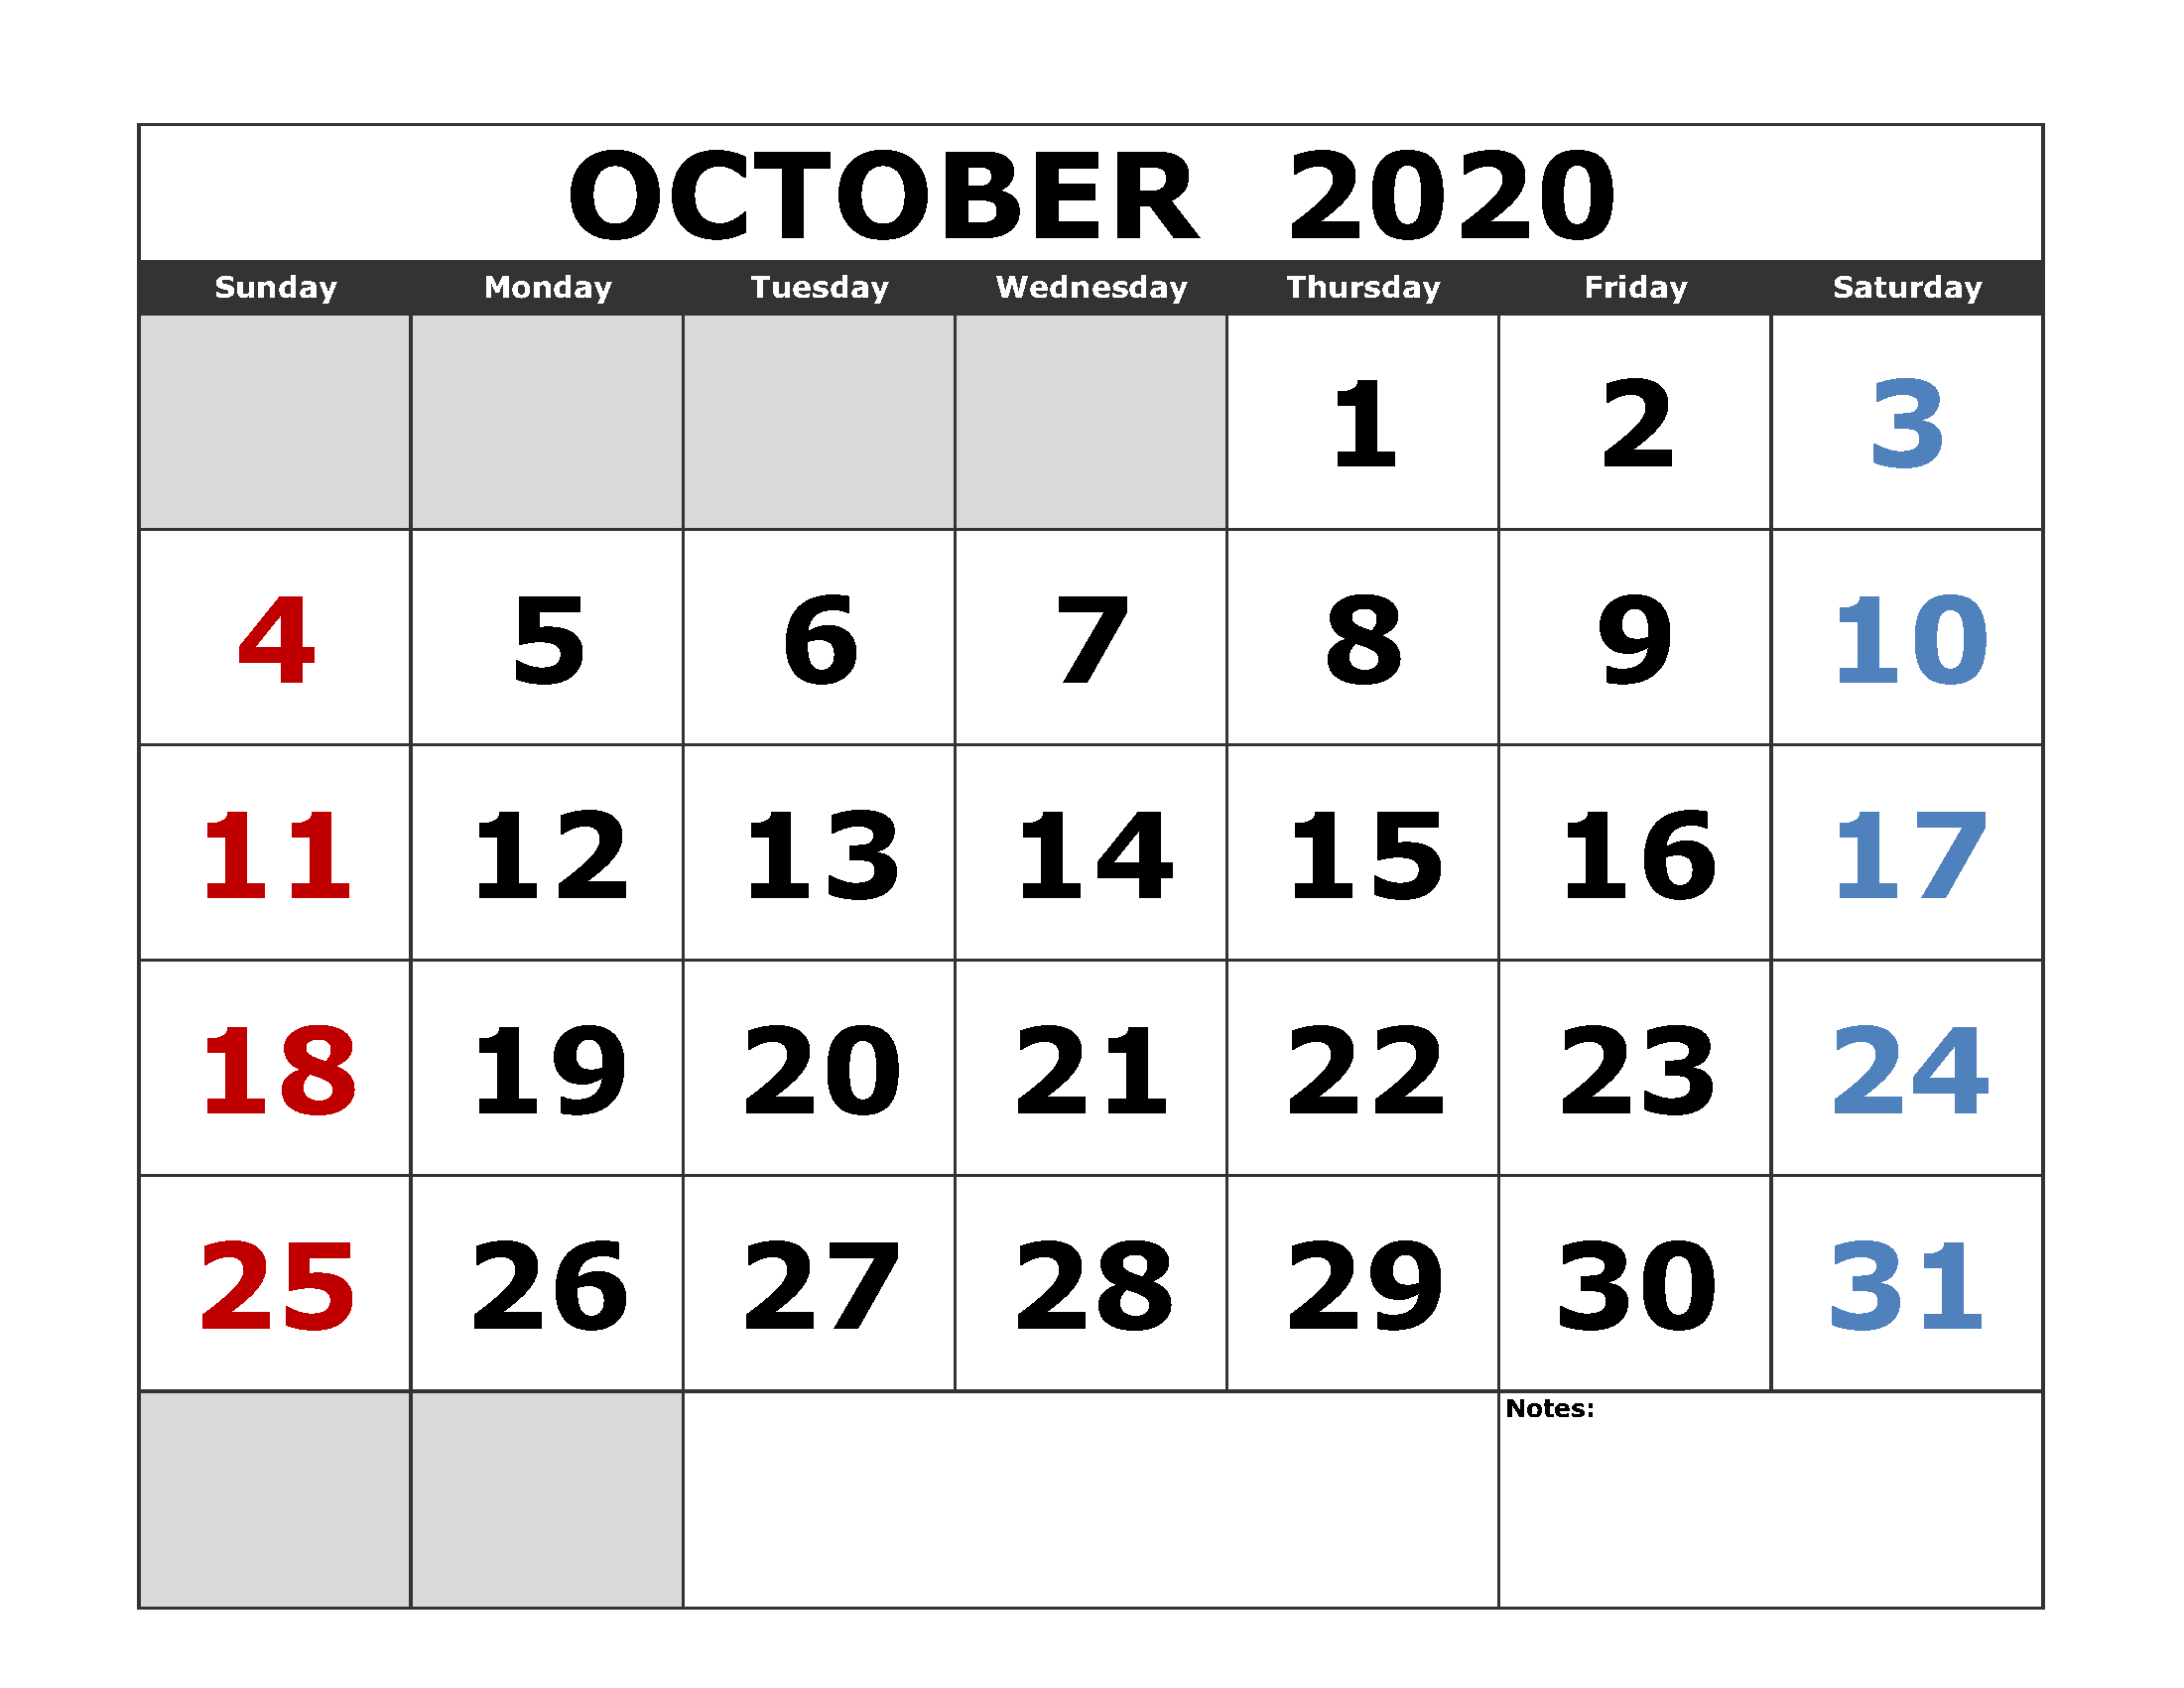 October 2020 Calendar Printable Tips You Will Read This Year for Free Printable 2020 Calendars Large Numbers